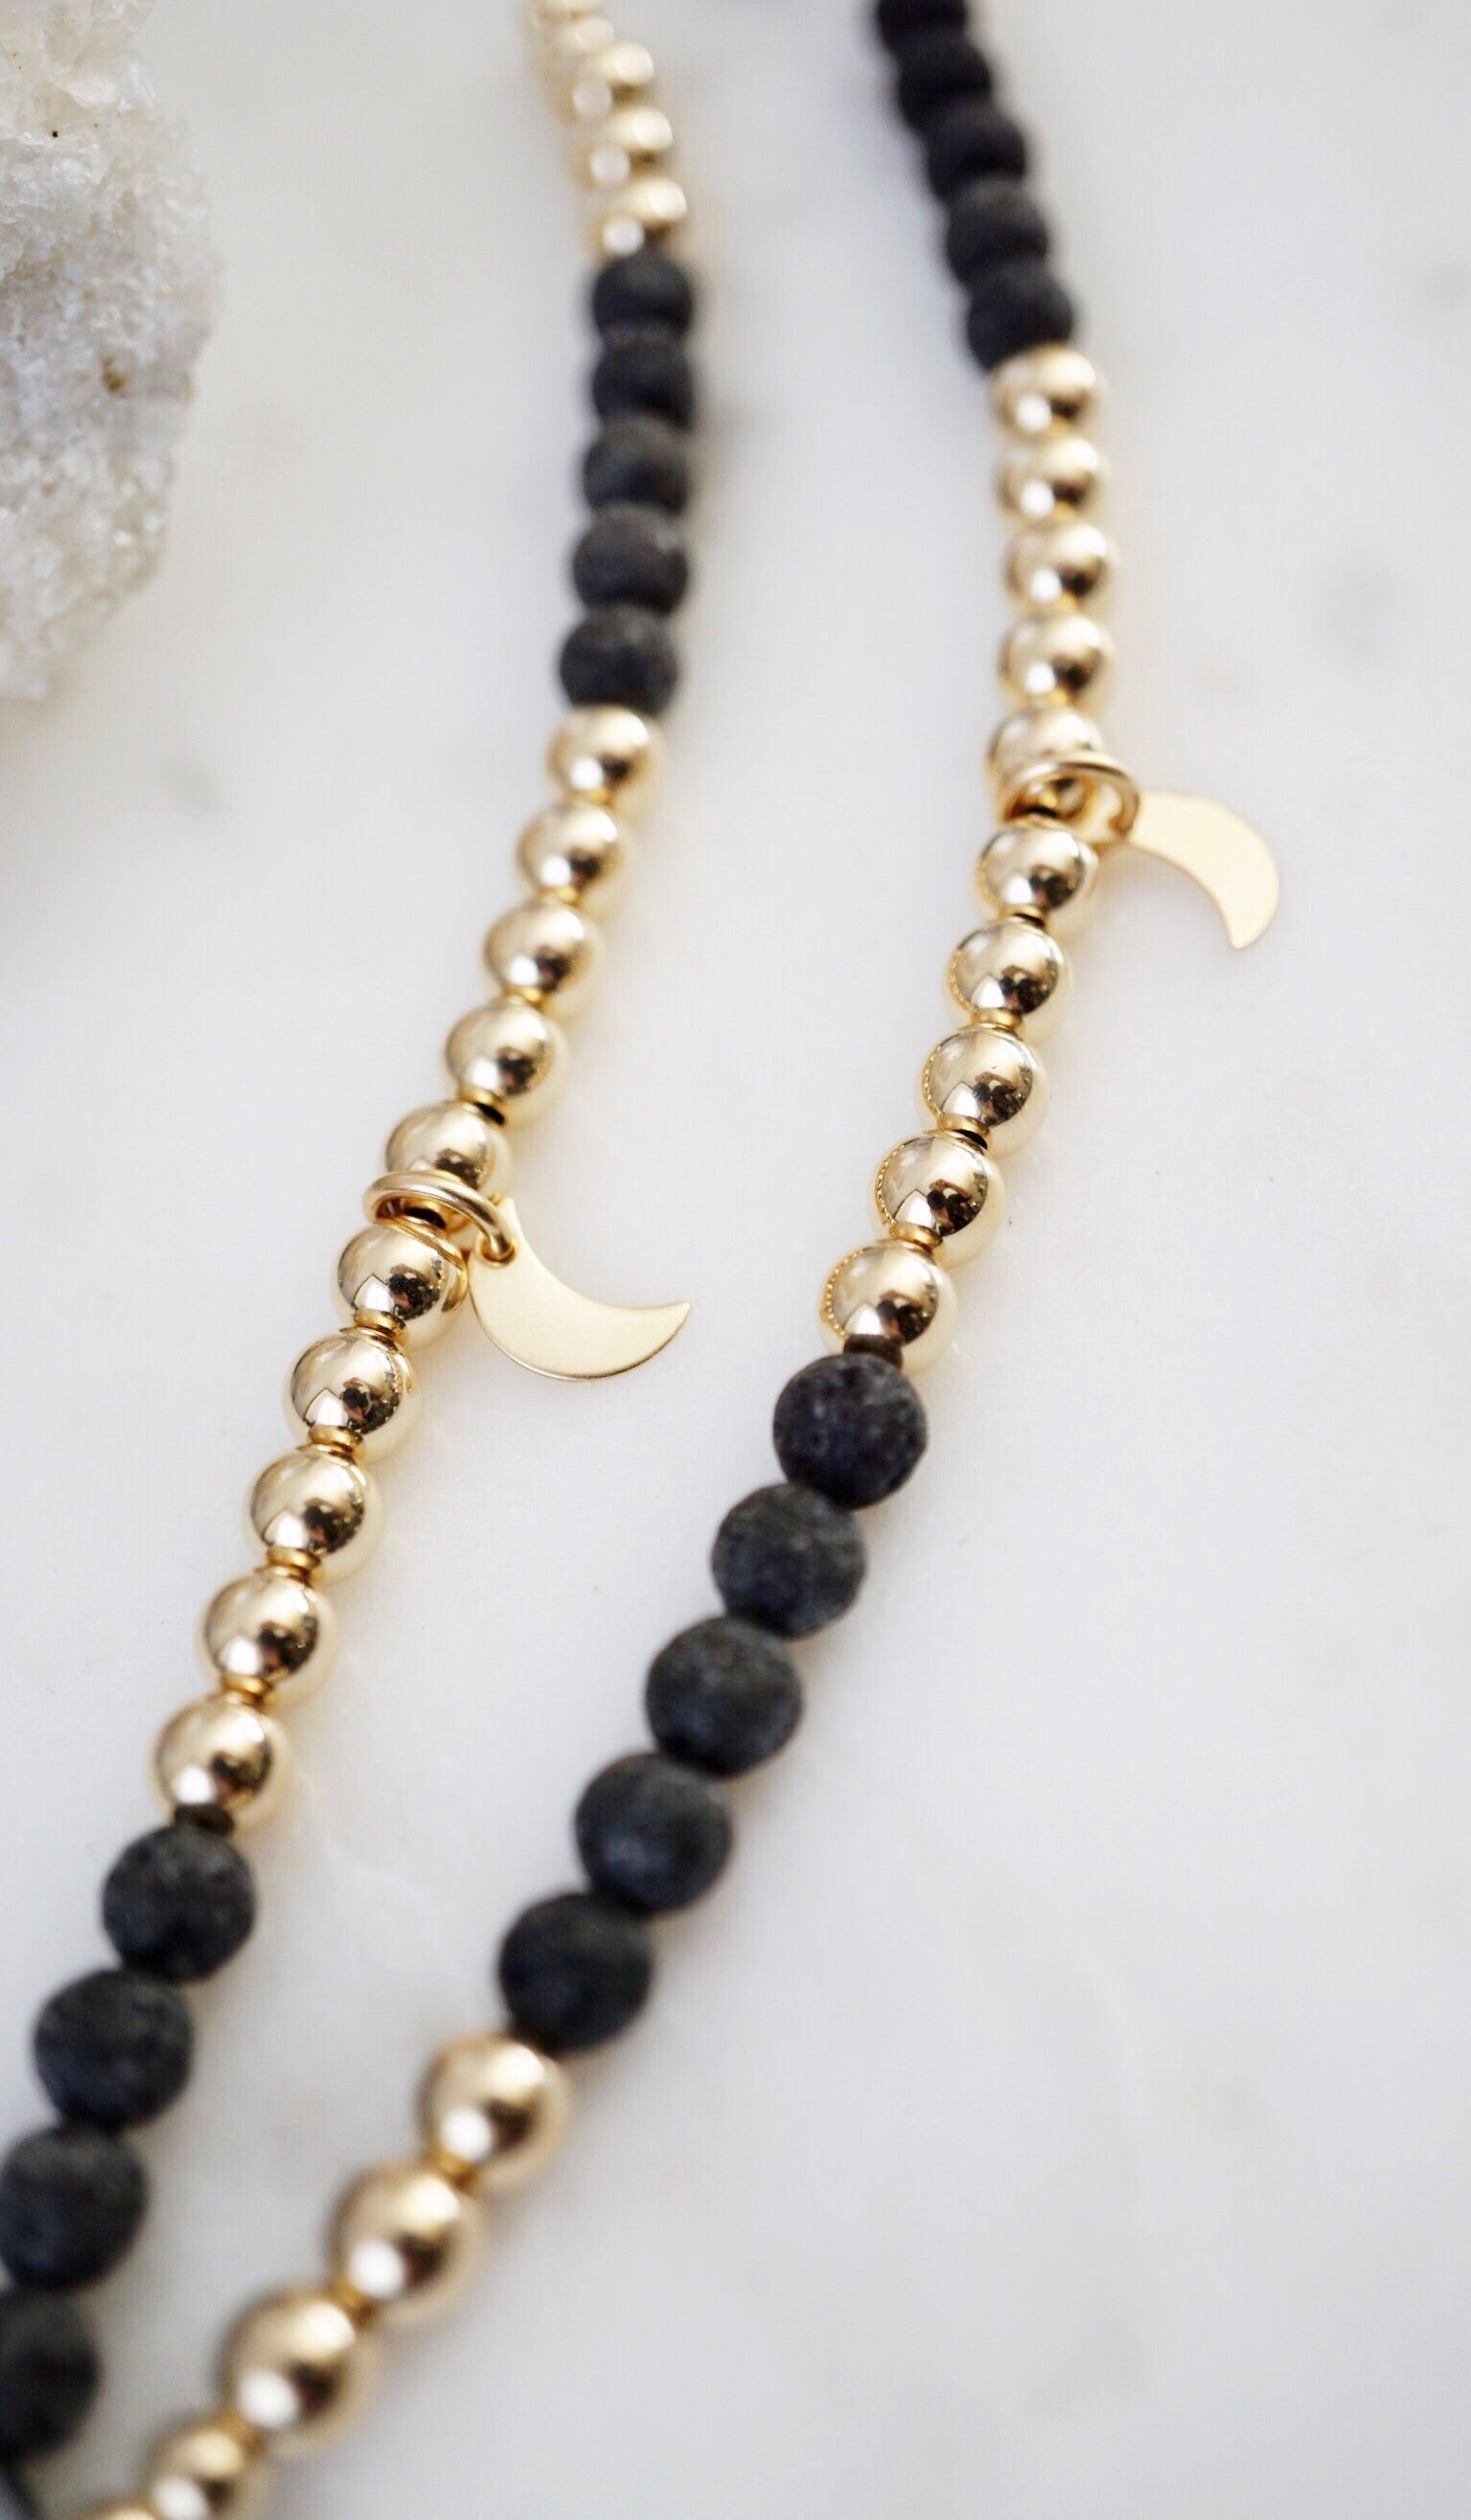 LUX Dainty 14K Gold-fill Lava Bracelet ▾ Limited Edition (025) - Lava Essential Oils